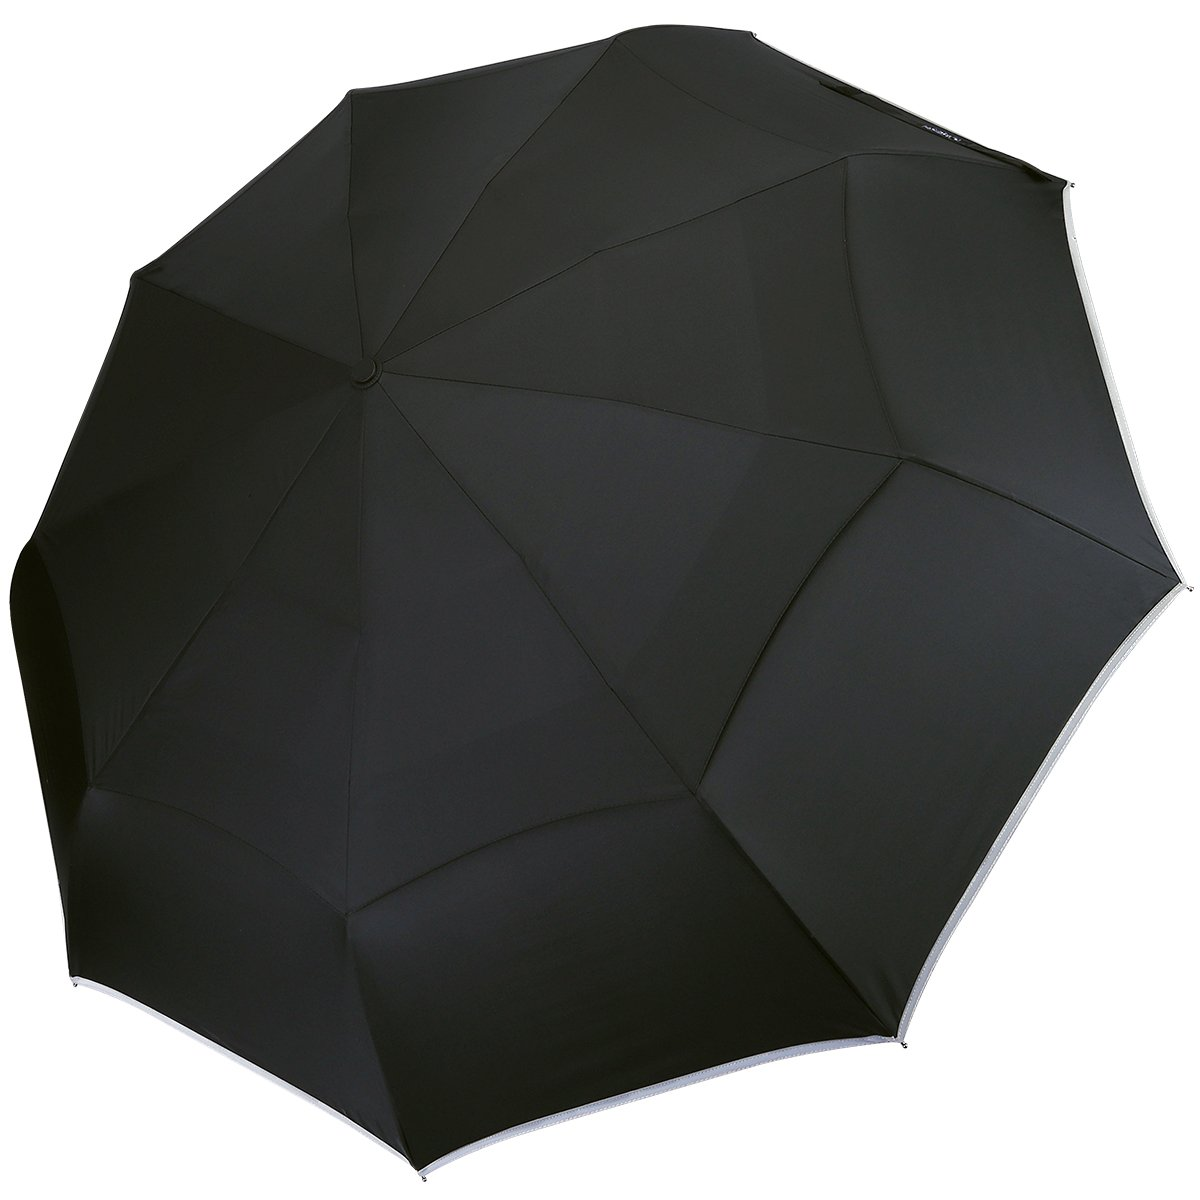 Chinese Supplier 3 Folding 9 Ribs Fully Automatic Double Canopy Outdoor Compact Umbrella